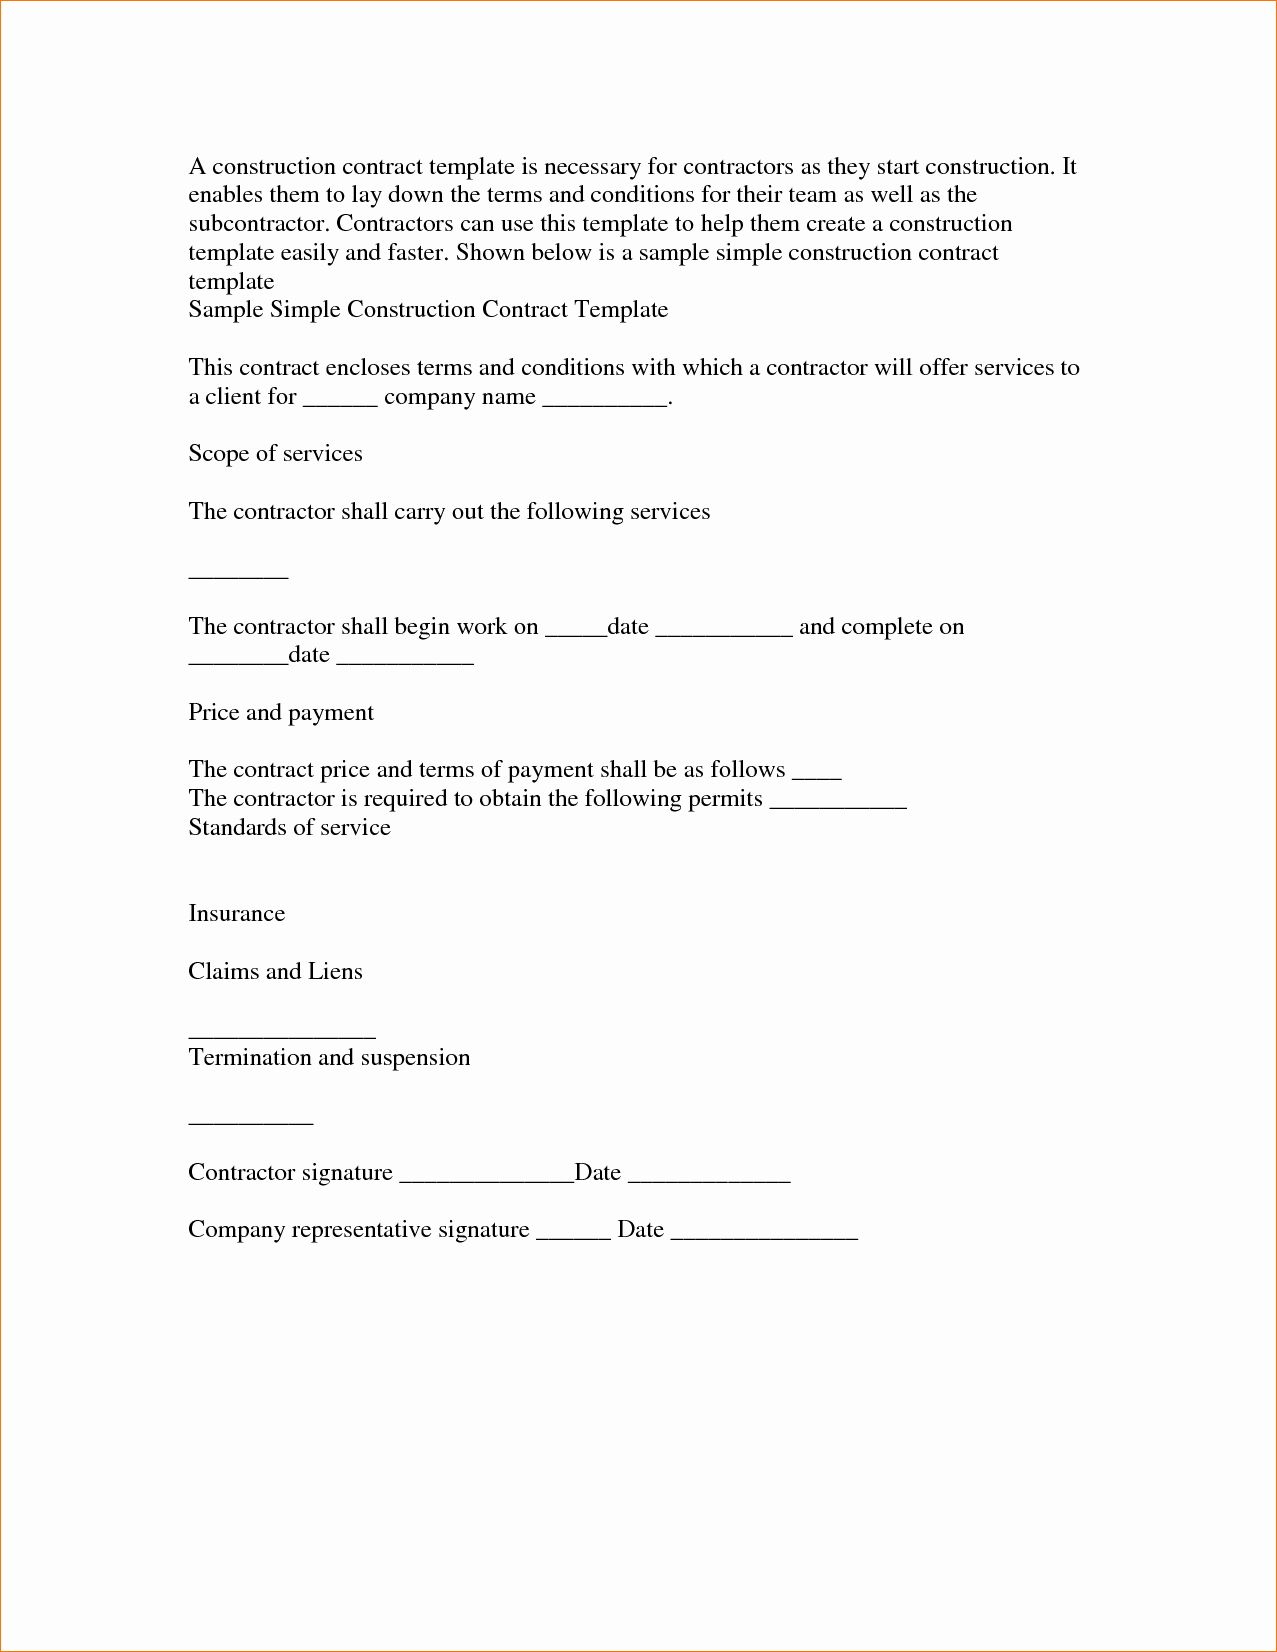 Simple Contract For Services Template Elegant Basic Service Contract Mughals Contract Template Construction Contract Startup Business Plan Template Simple contract for services template